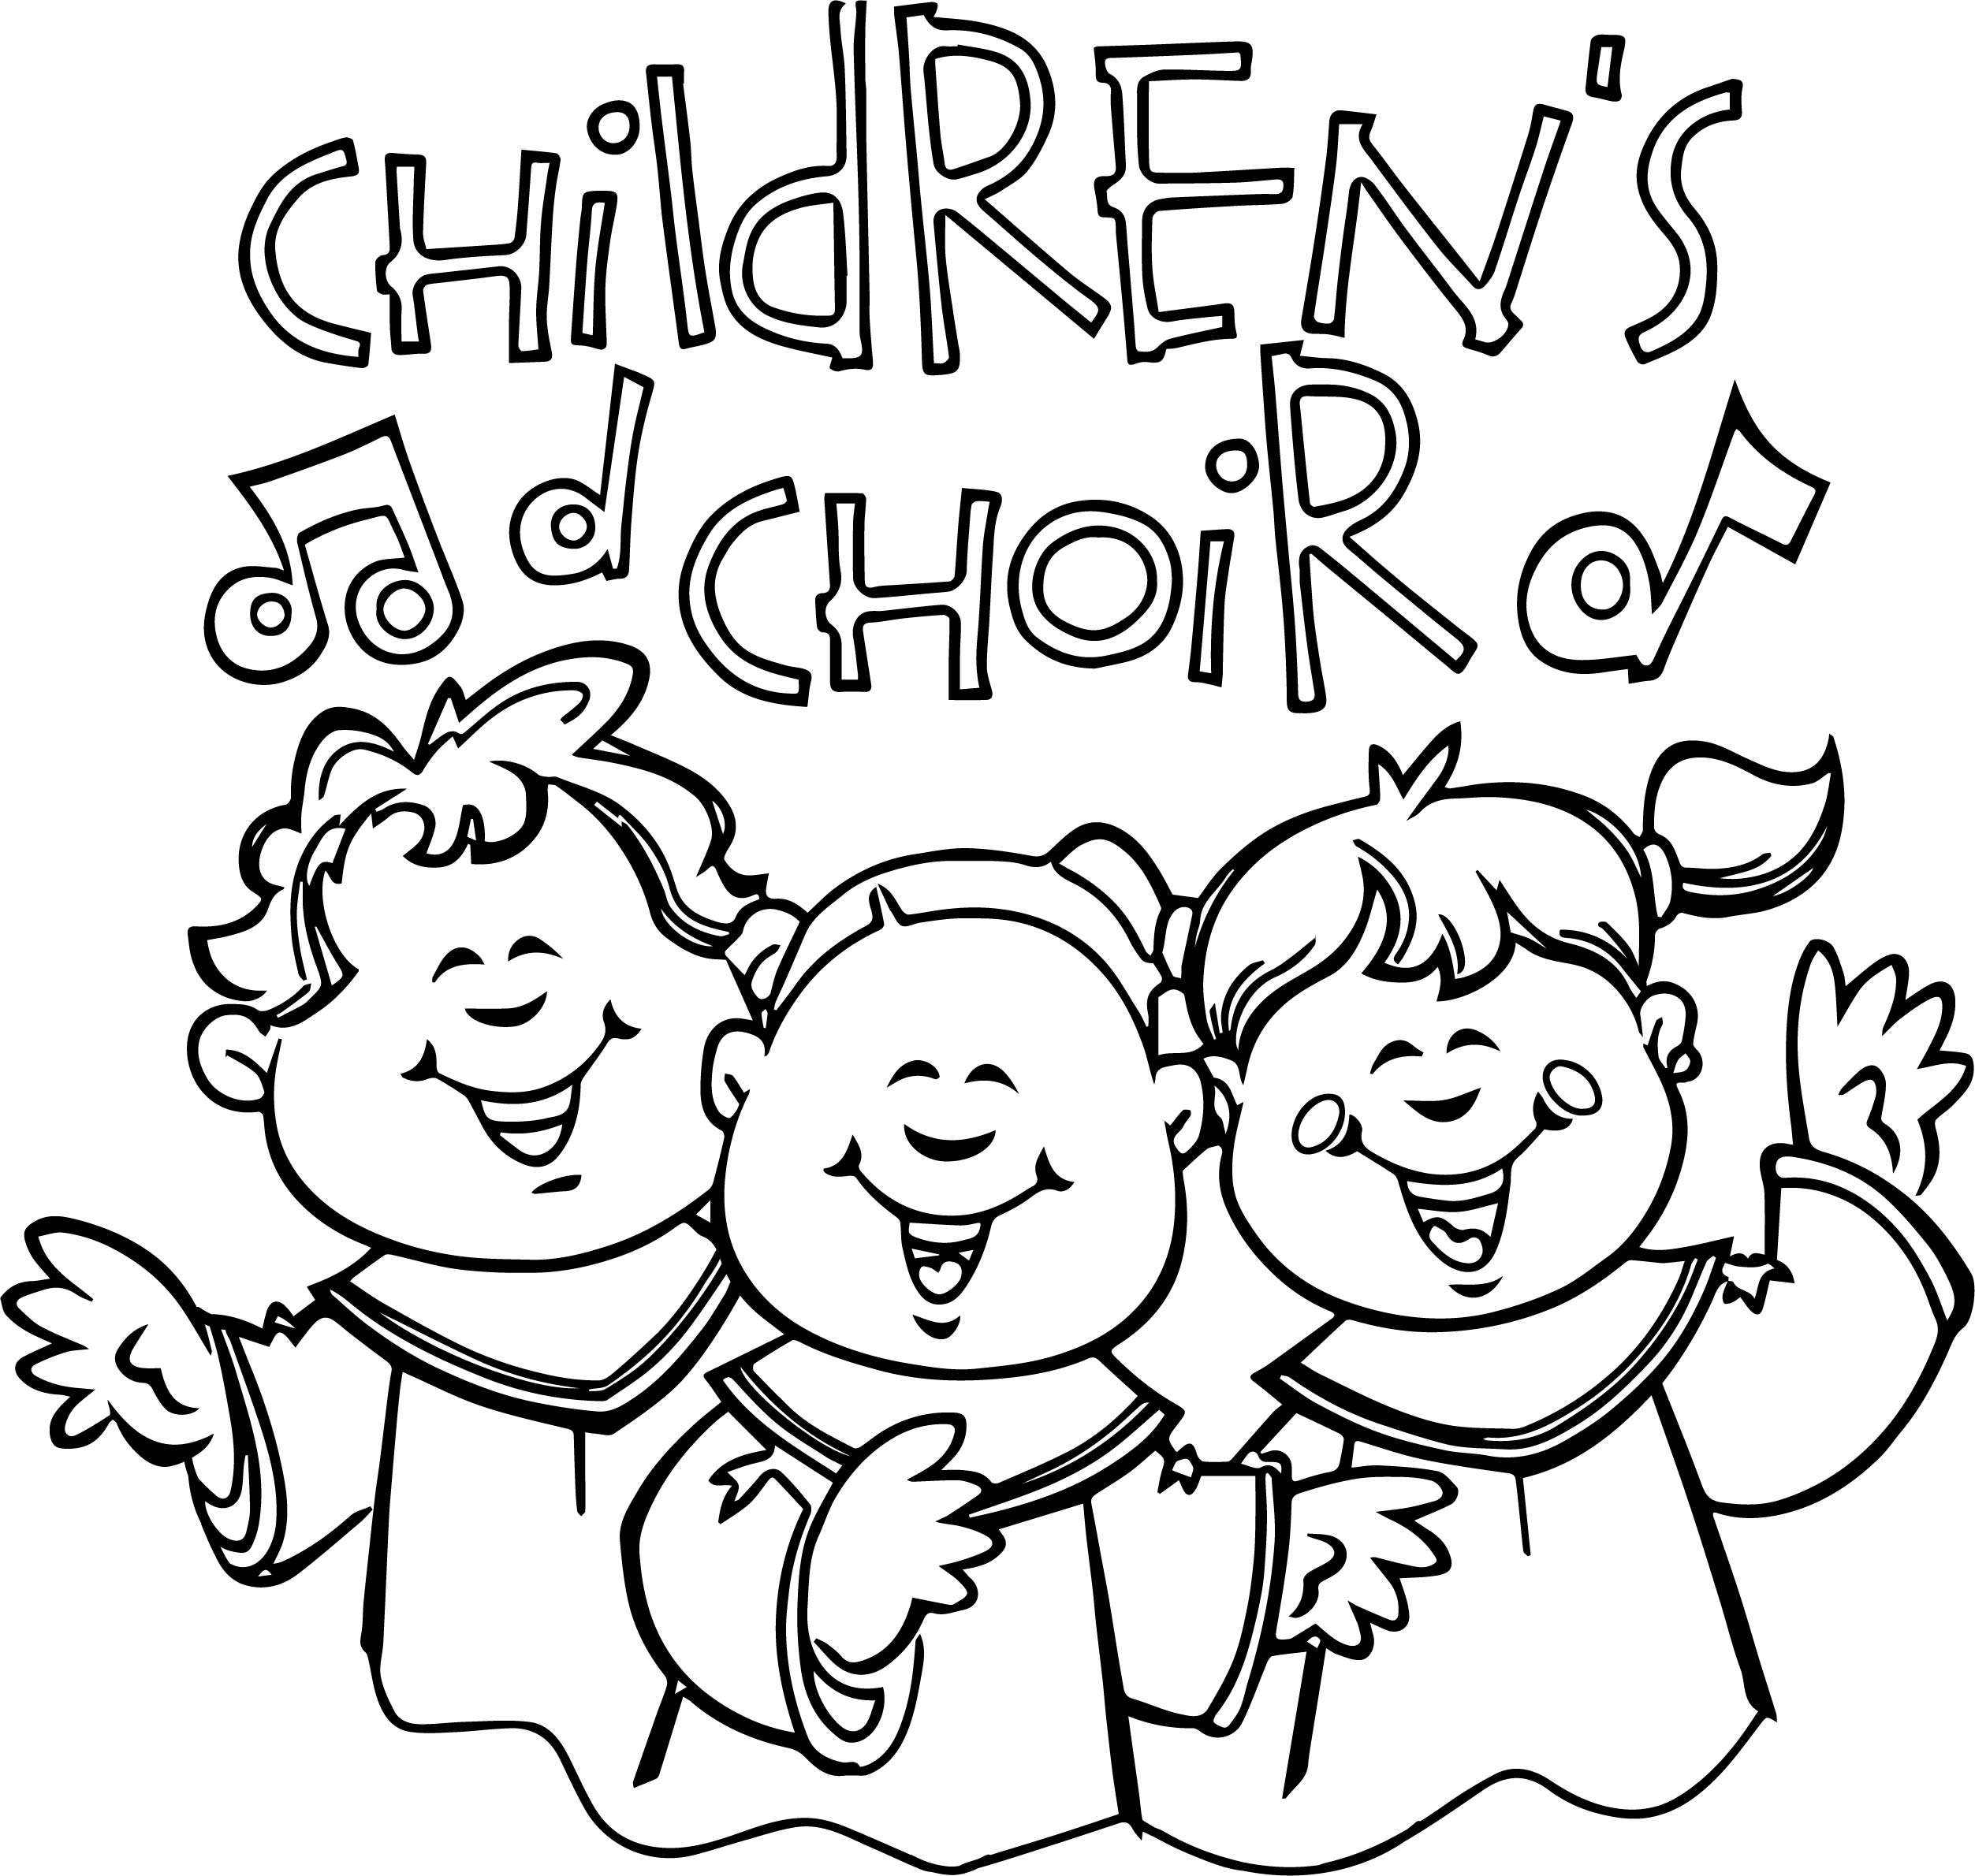 Children Singing In Church Coloring Page | Wecoloringpage.com